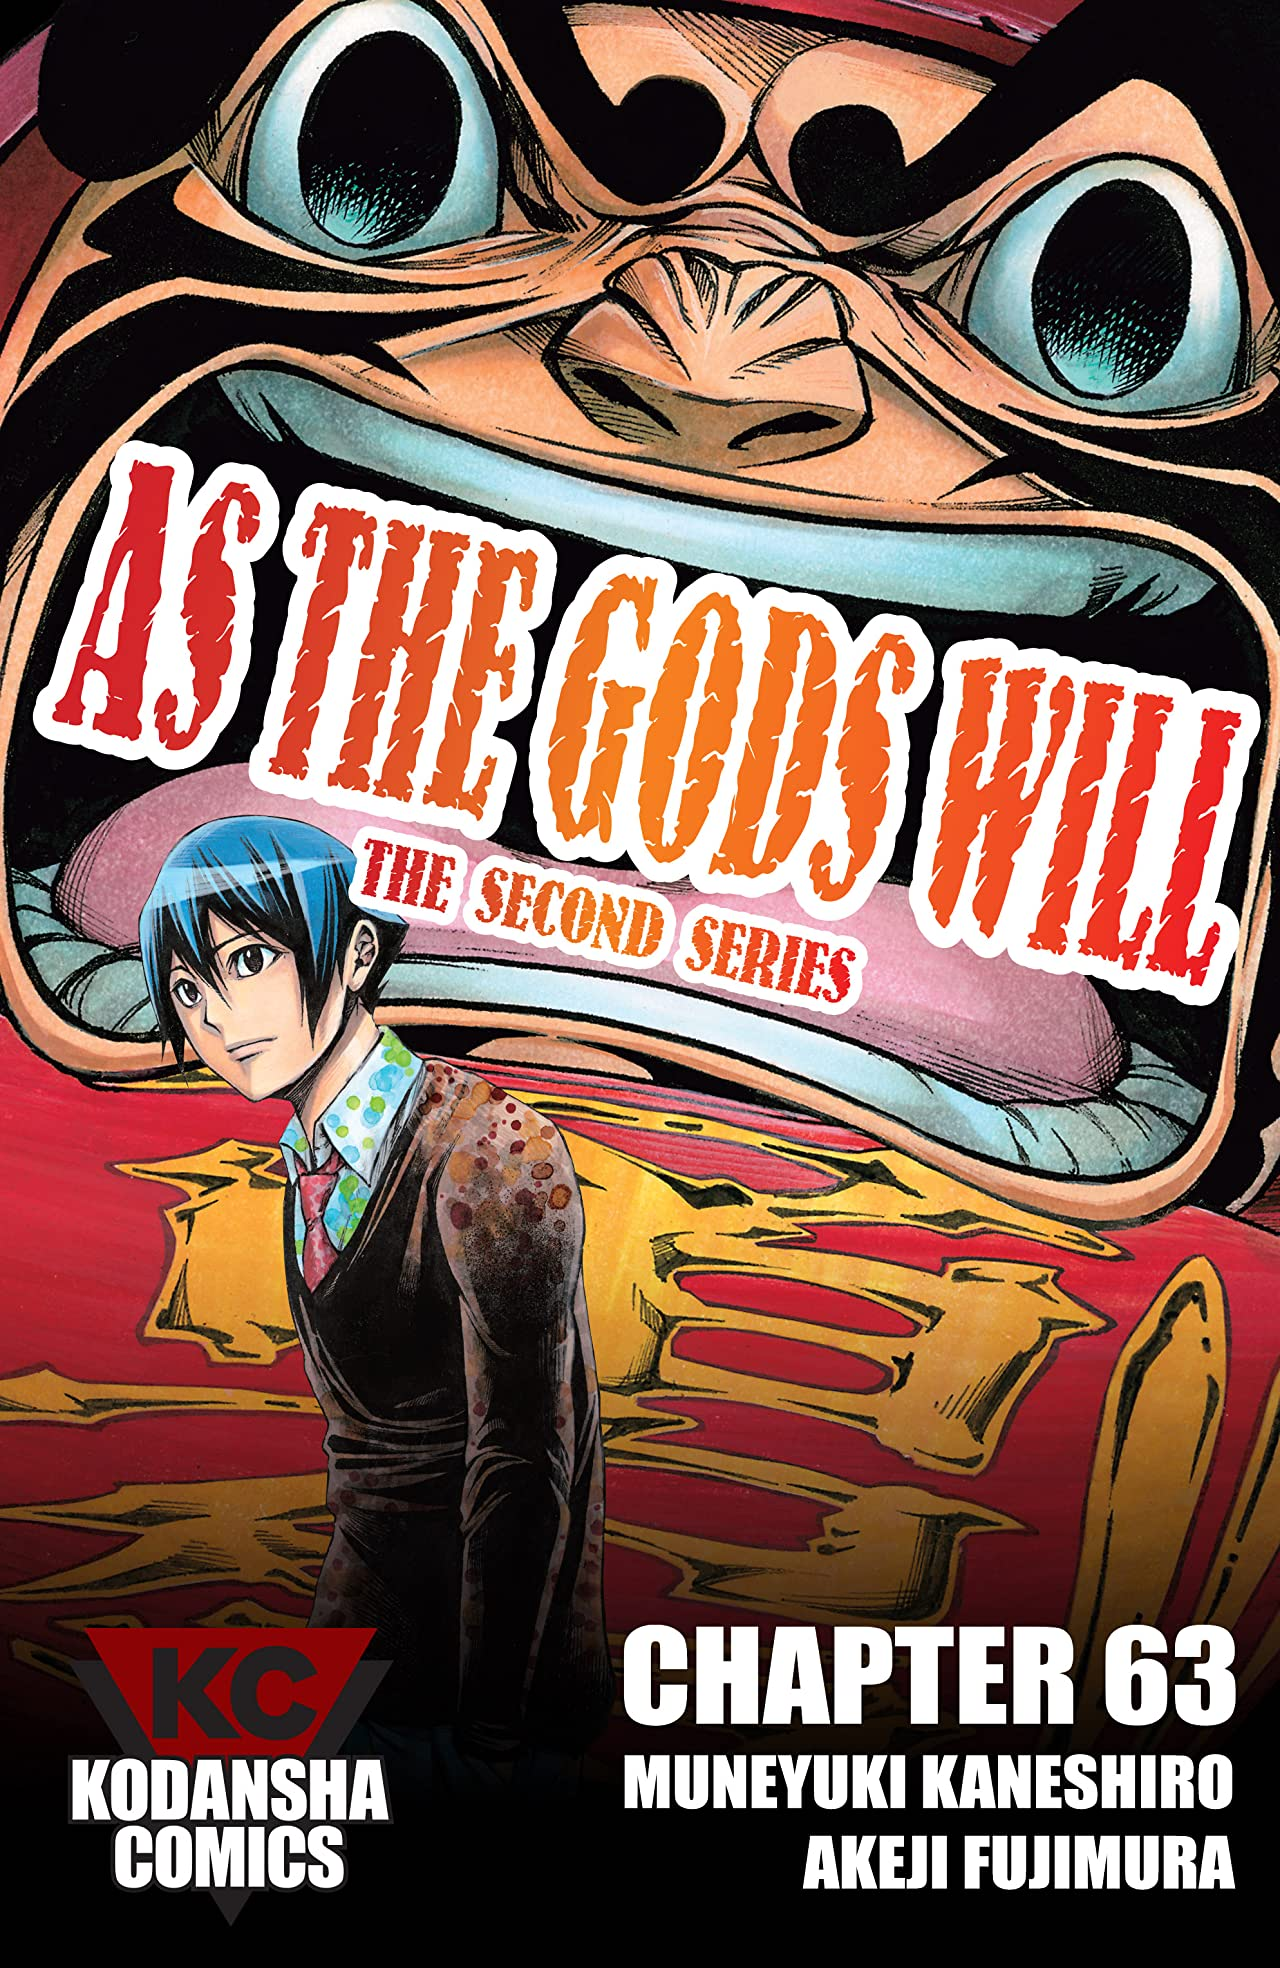 As The Gods Will: The Second Series #63